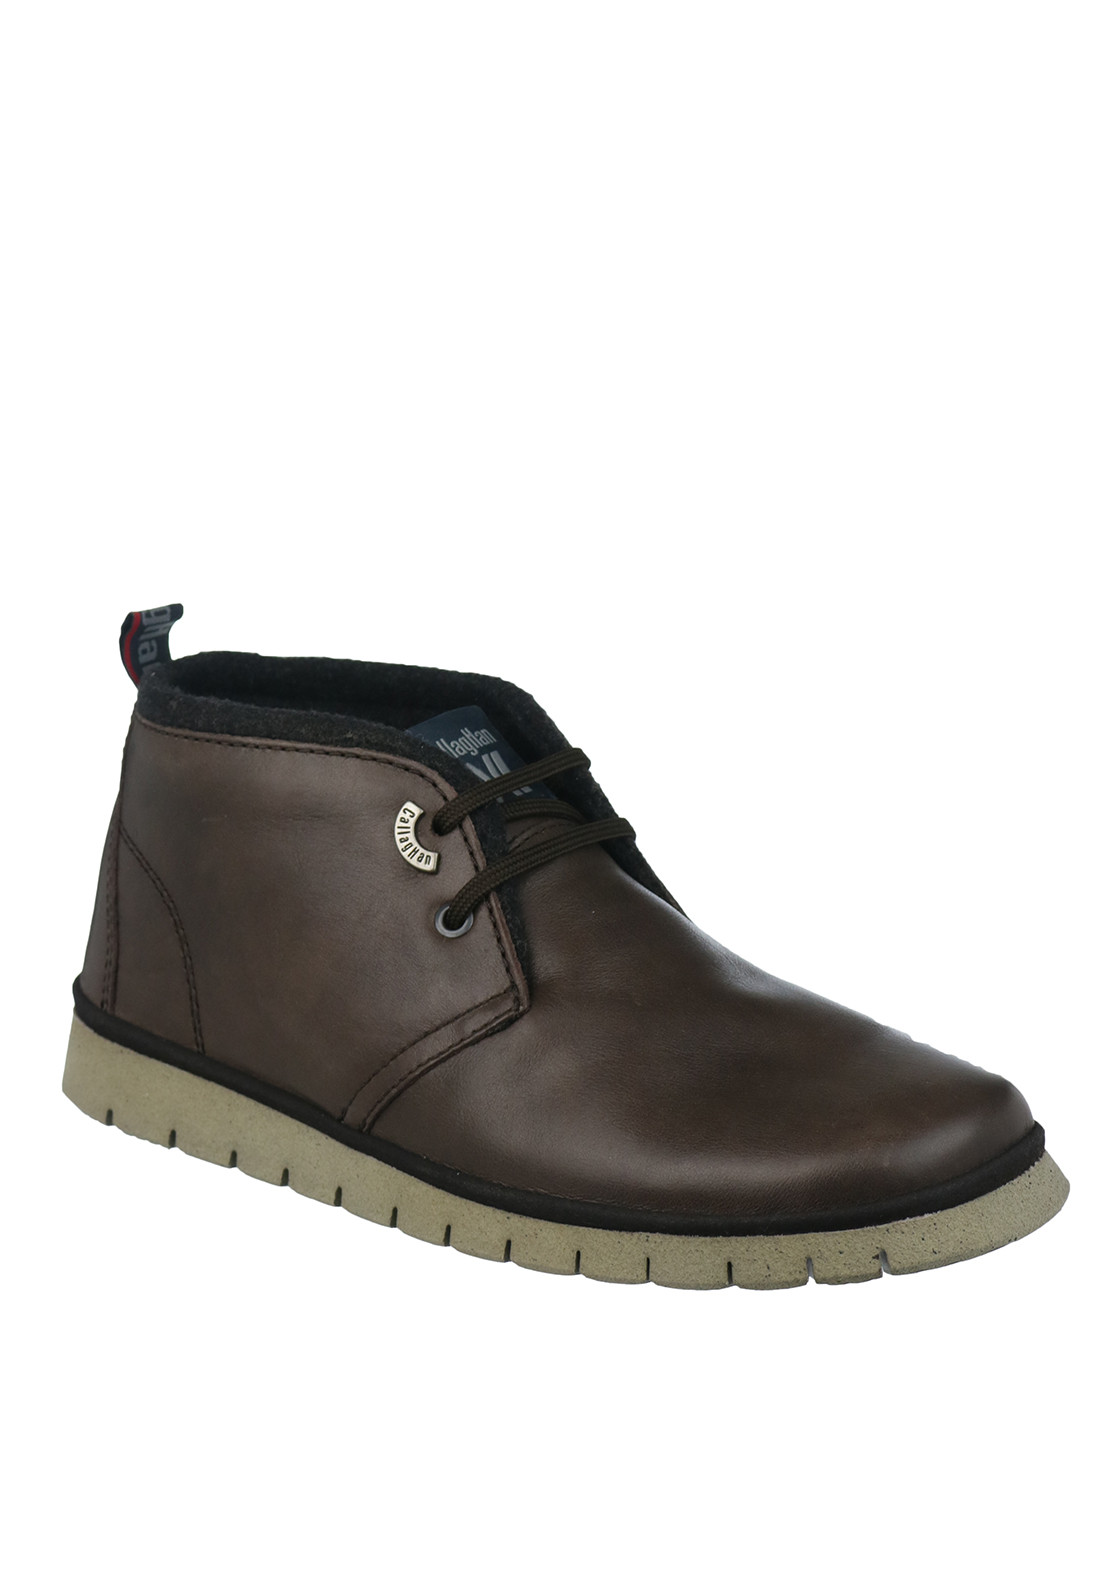 Callaghan Leather Lace Up Desert Boot, Brown